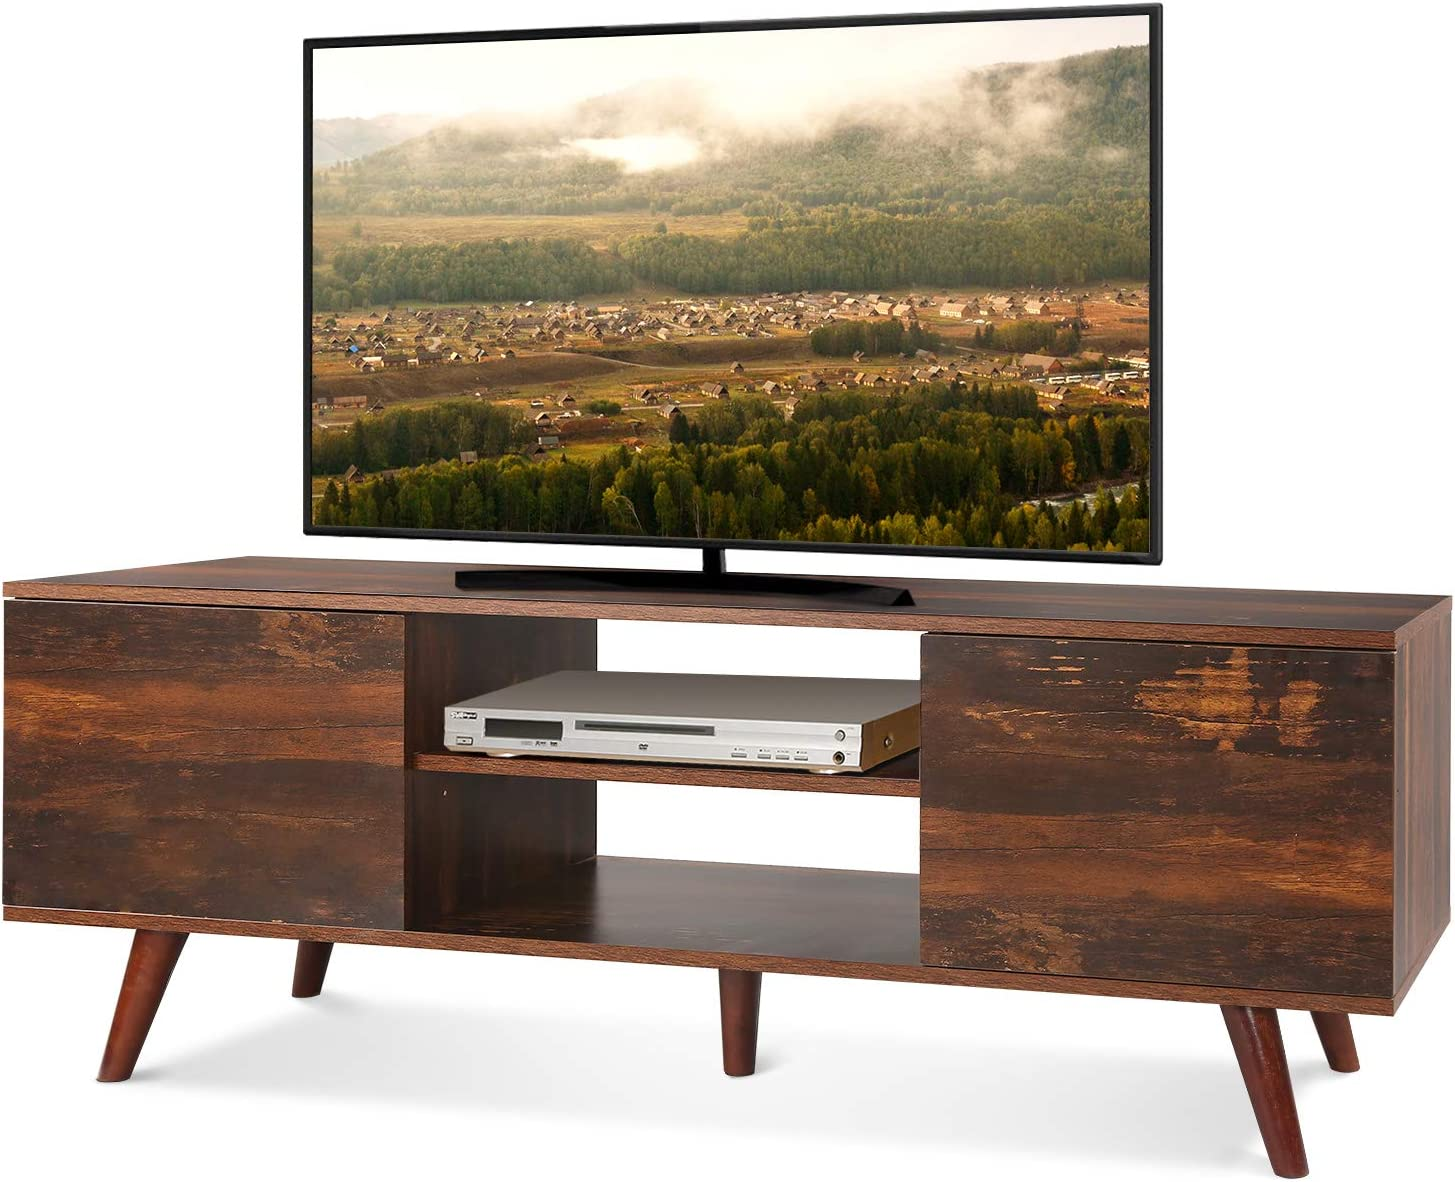 """WLIVE Mid-Century Modern TV Stand for 55"""" TV, TV Console, Retro Entertainment Center in Living Room, Entertainment Room, Office, Rustic O9 Oak"""